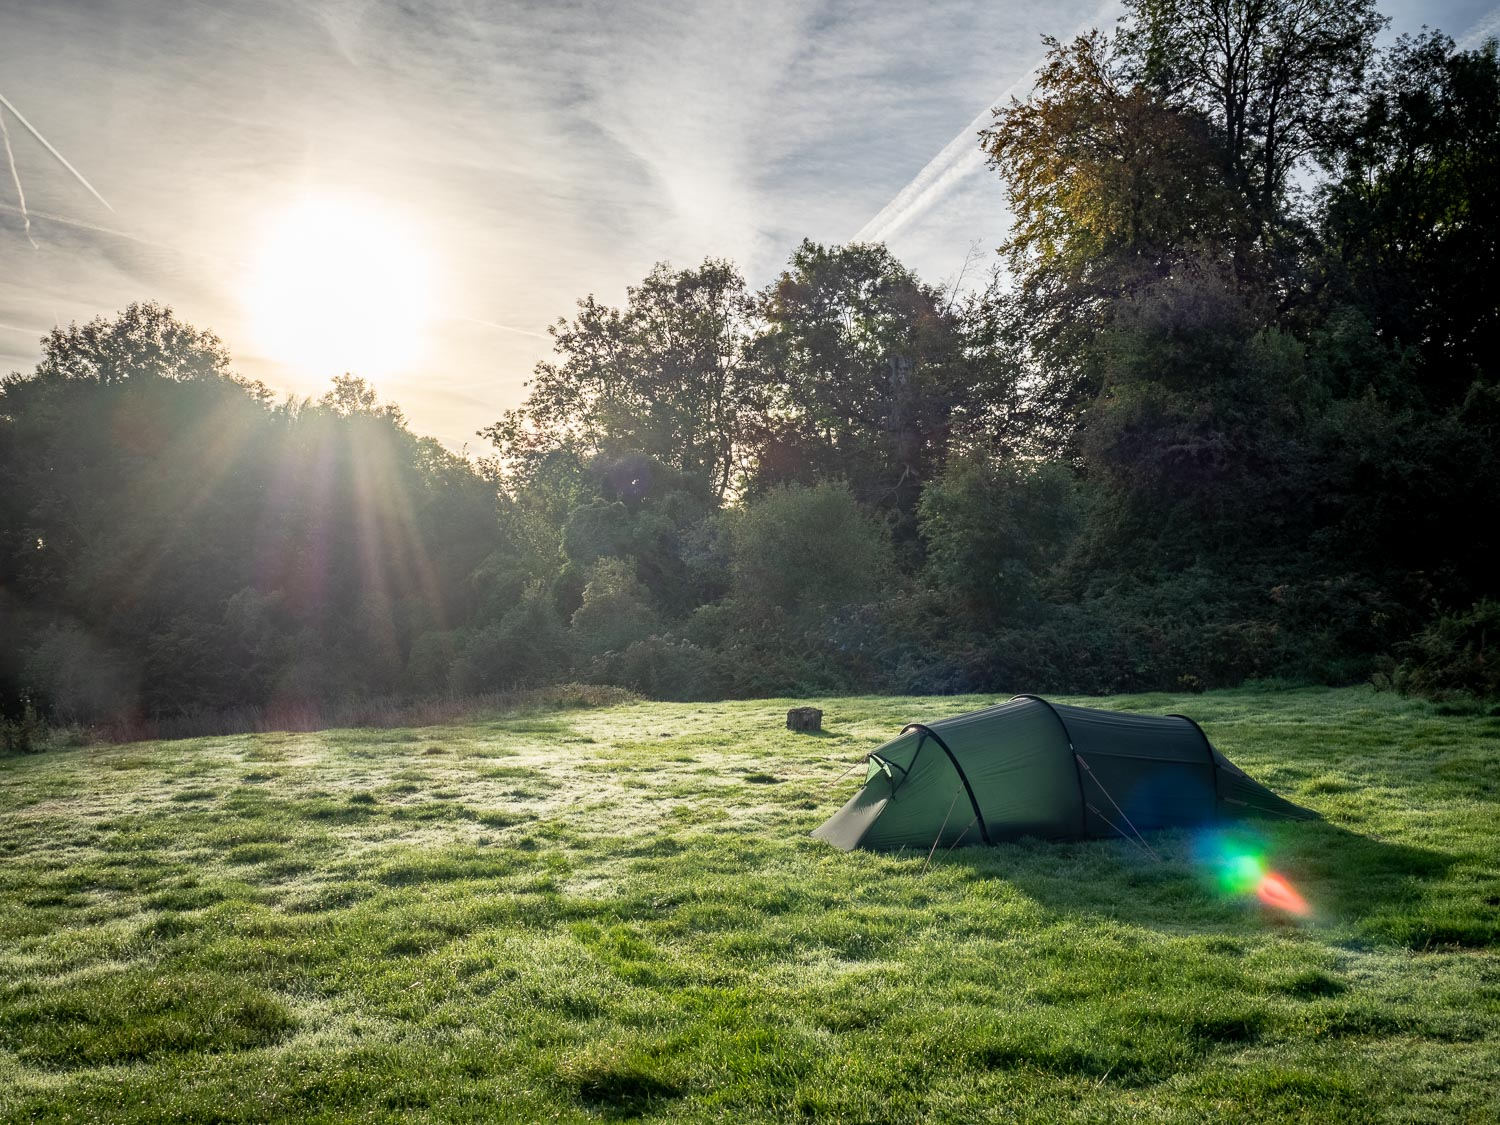 A Photograph Showing A Hilleberg Nallo Tent In Frost In Front Of A Rising Sun At The Thistledown Campsite Near Stroud, Gloucestershire.